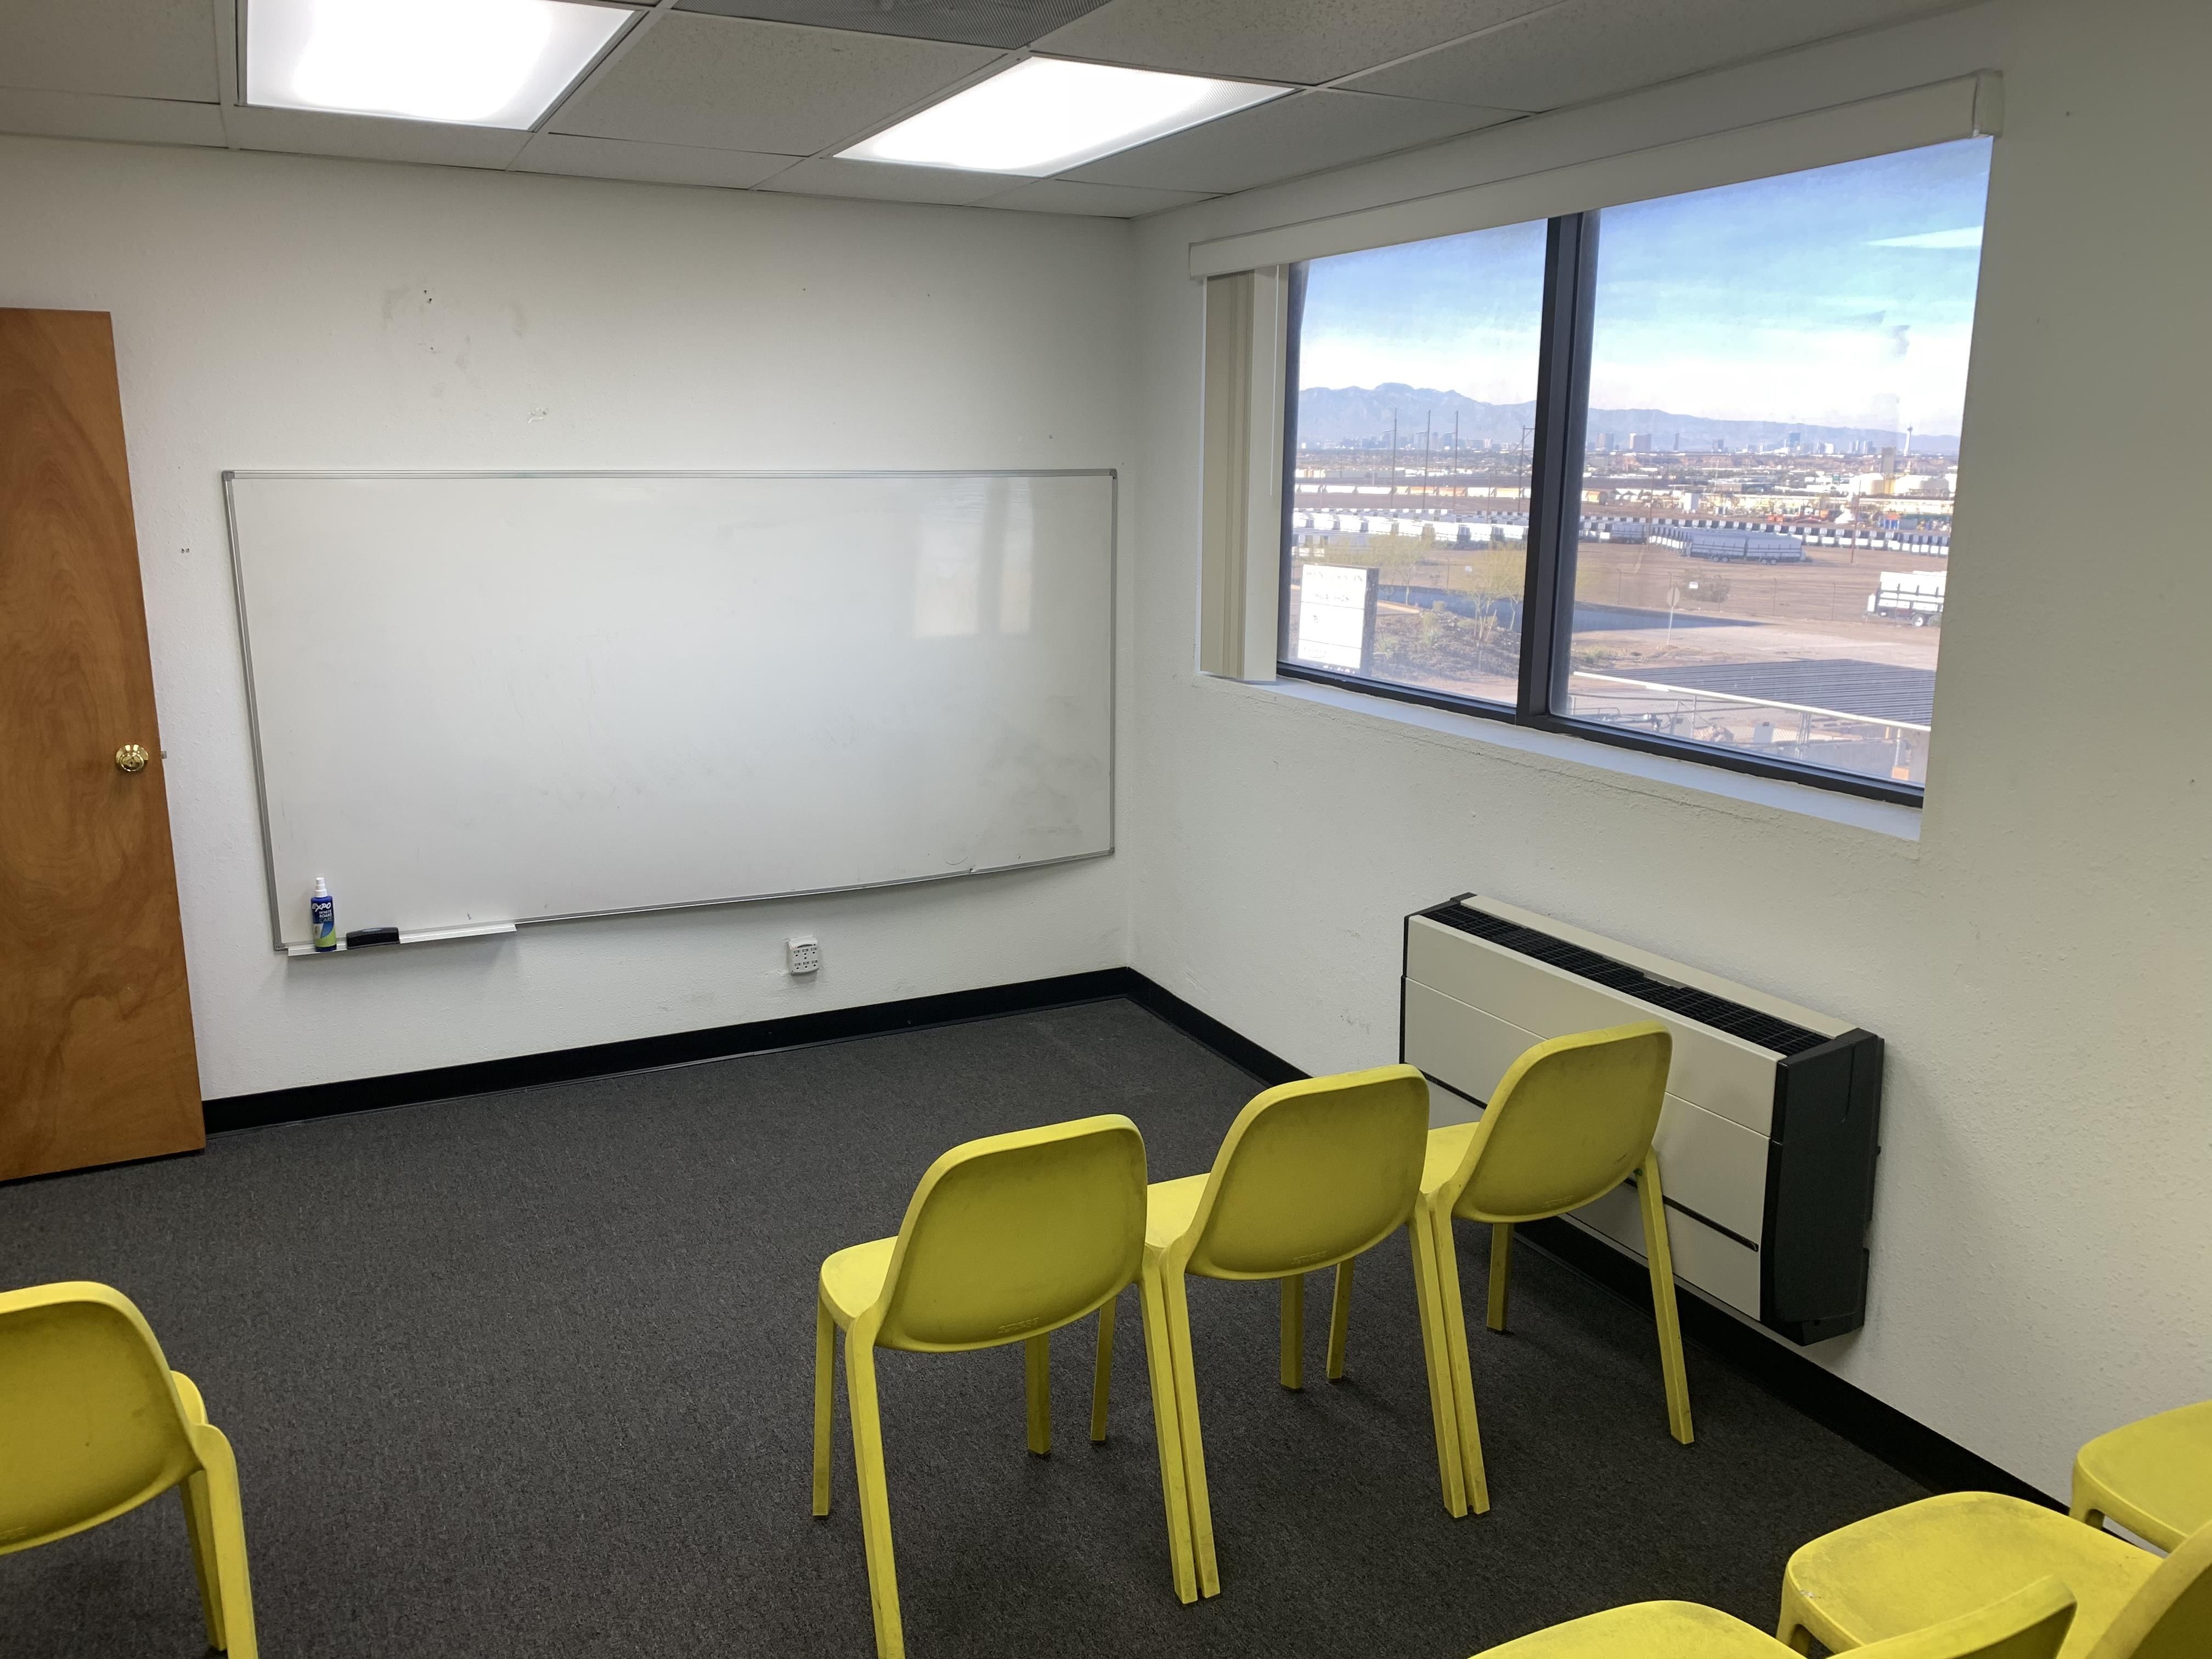 Henderson Learning Center - Conference room 206